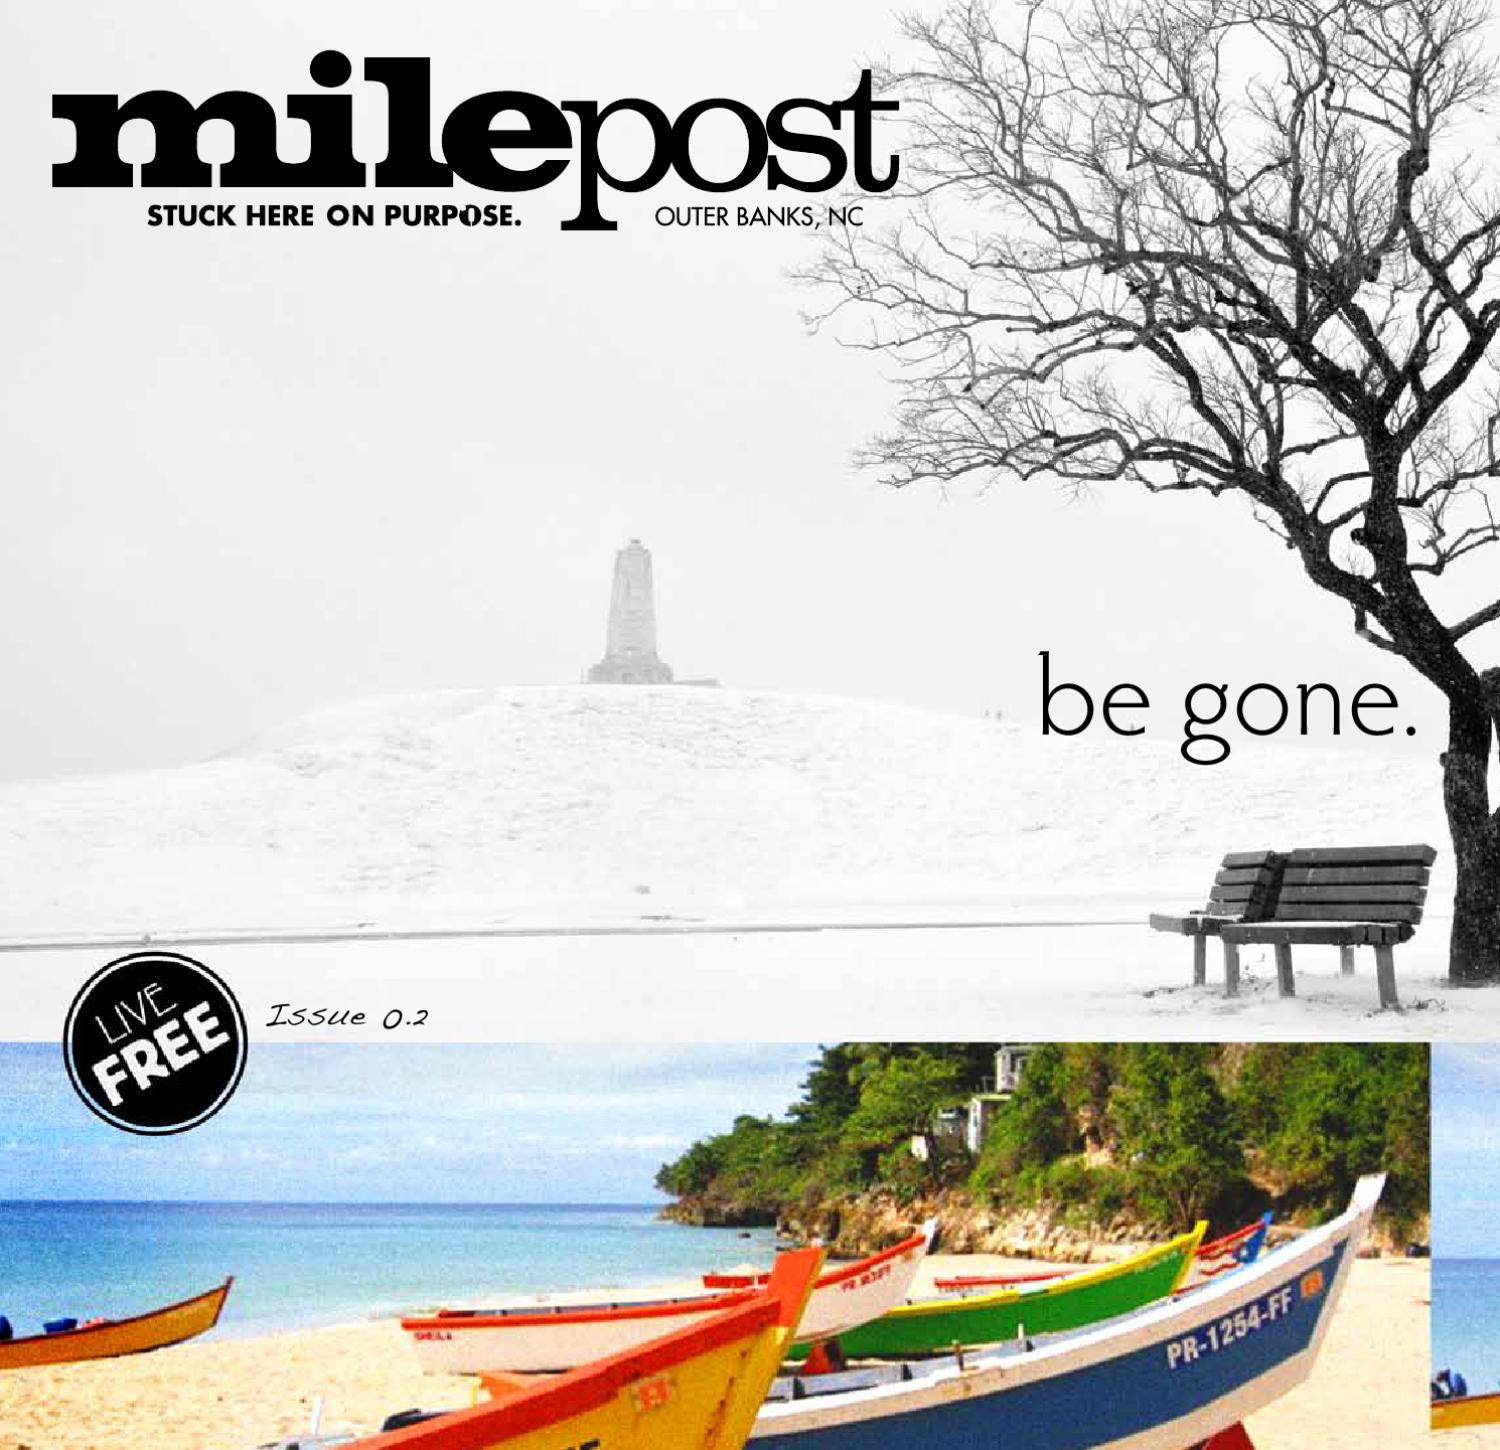 19f9040c65825 Outer Banks Milepost Issue 0.2 by Matt Walker - issuu